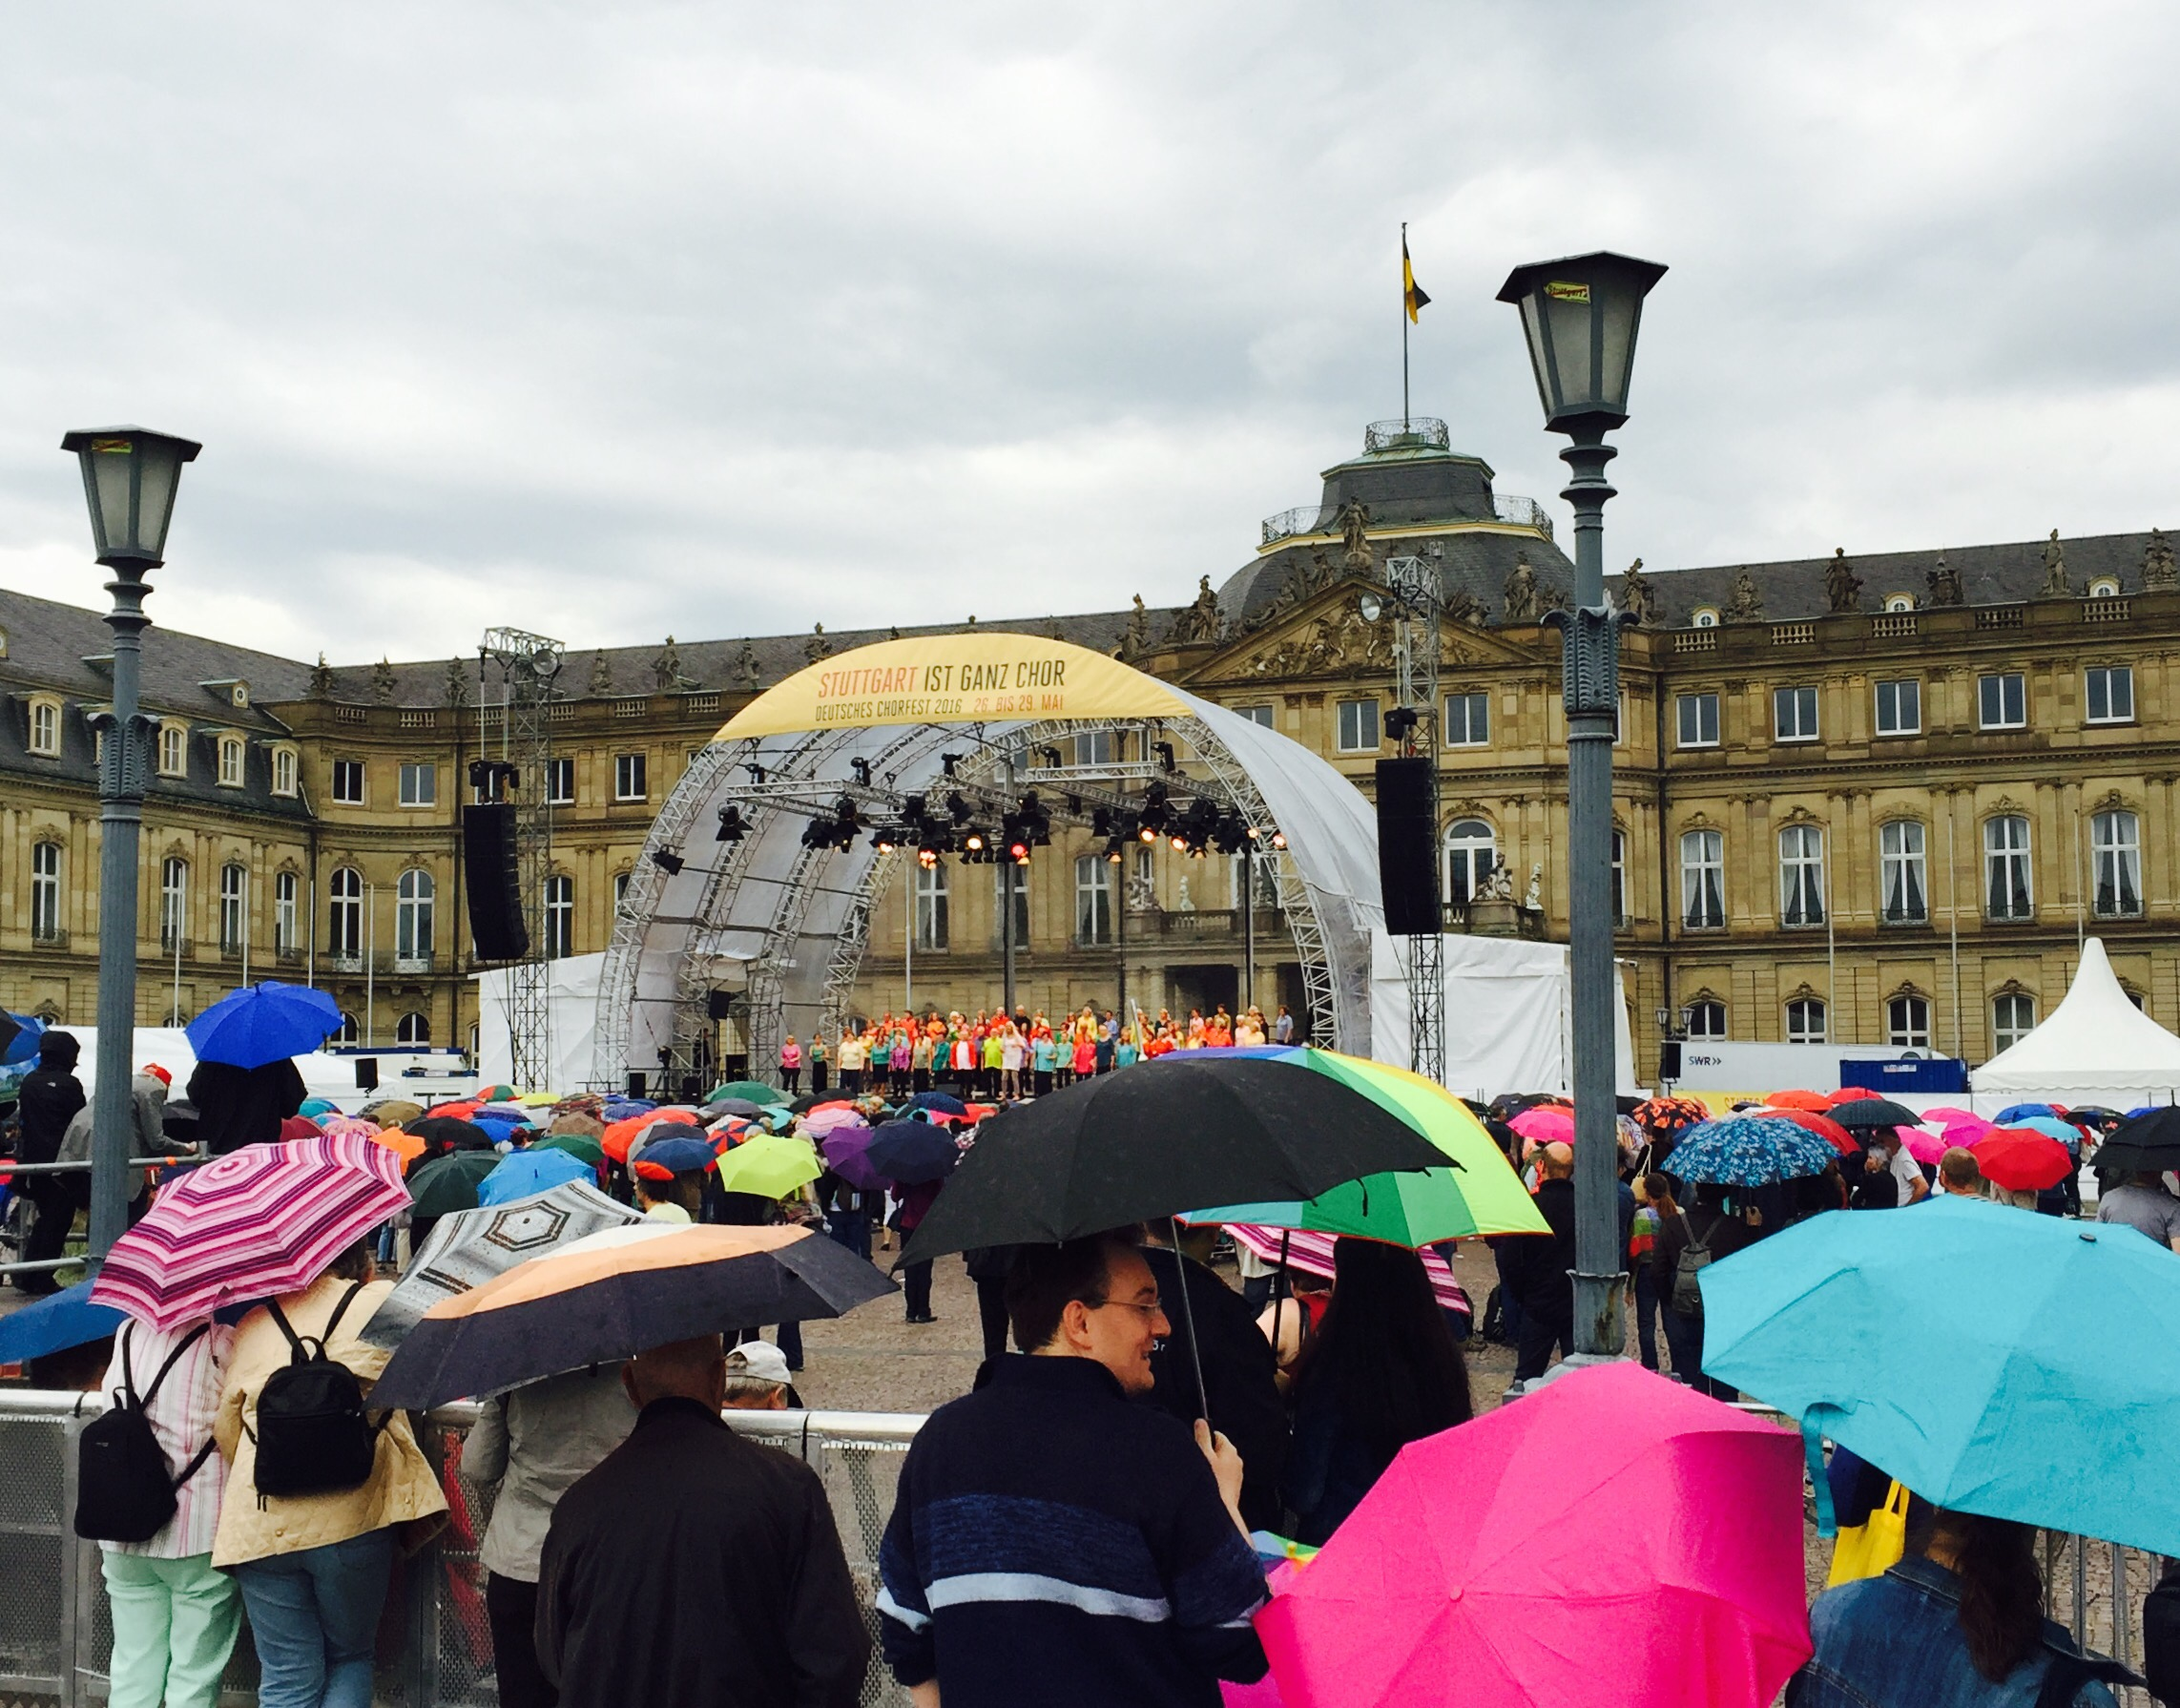 A large crowd listens to choral music standing in the rain.